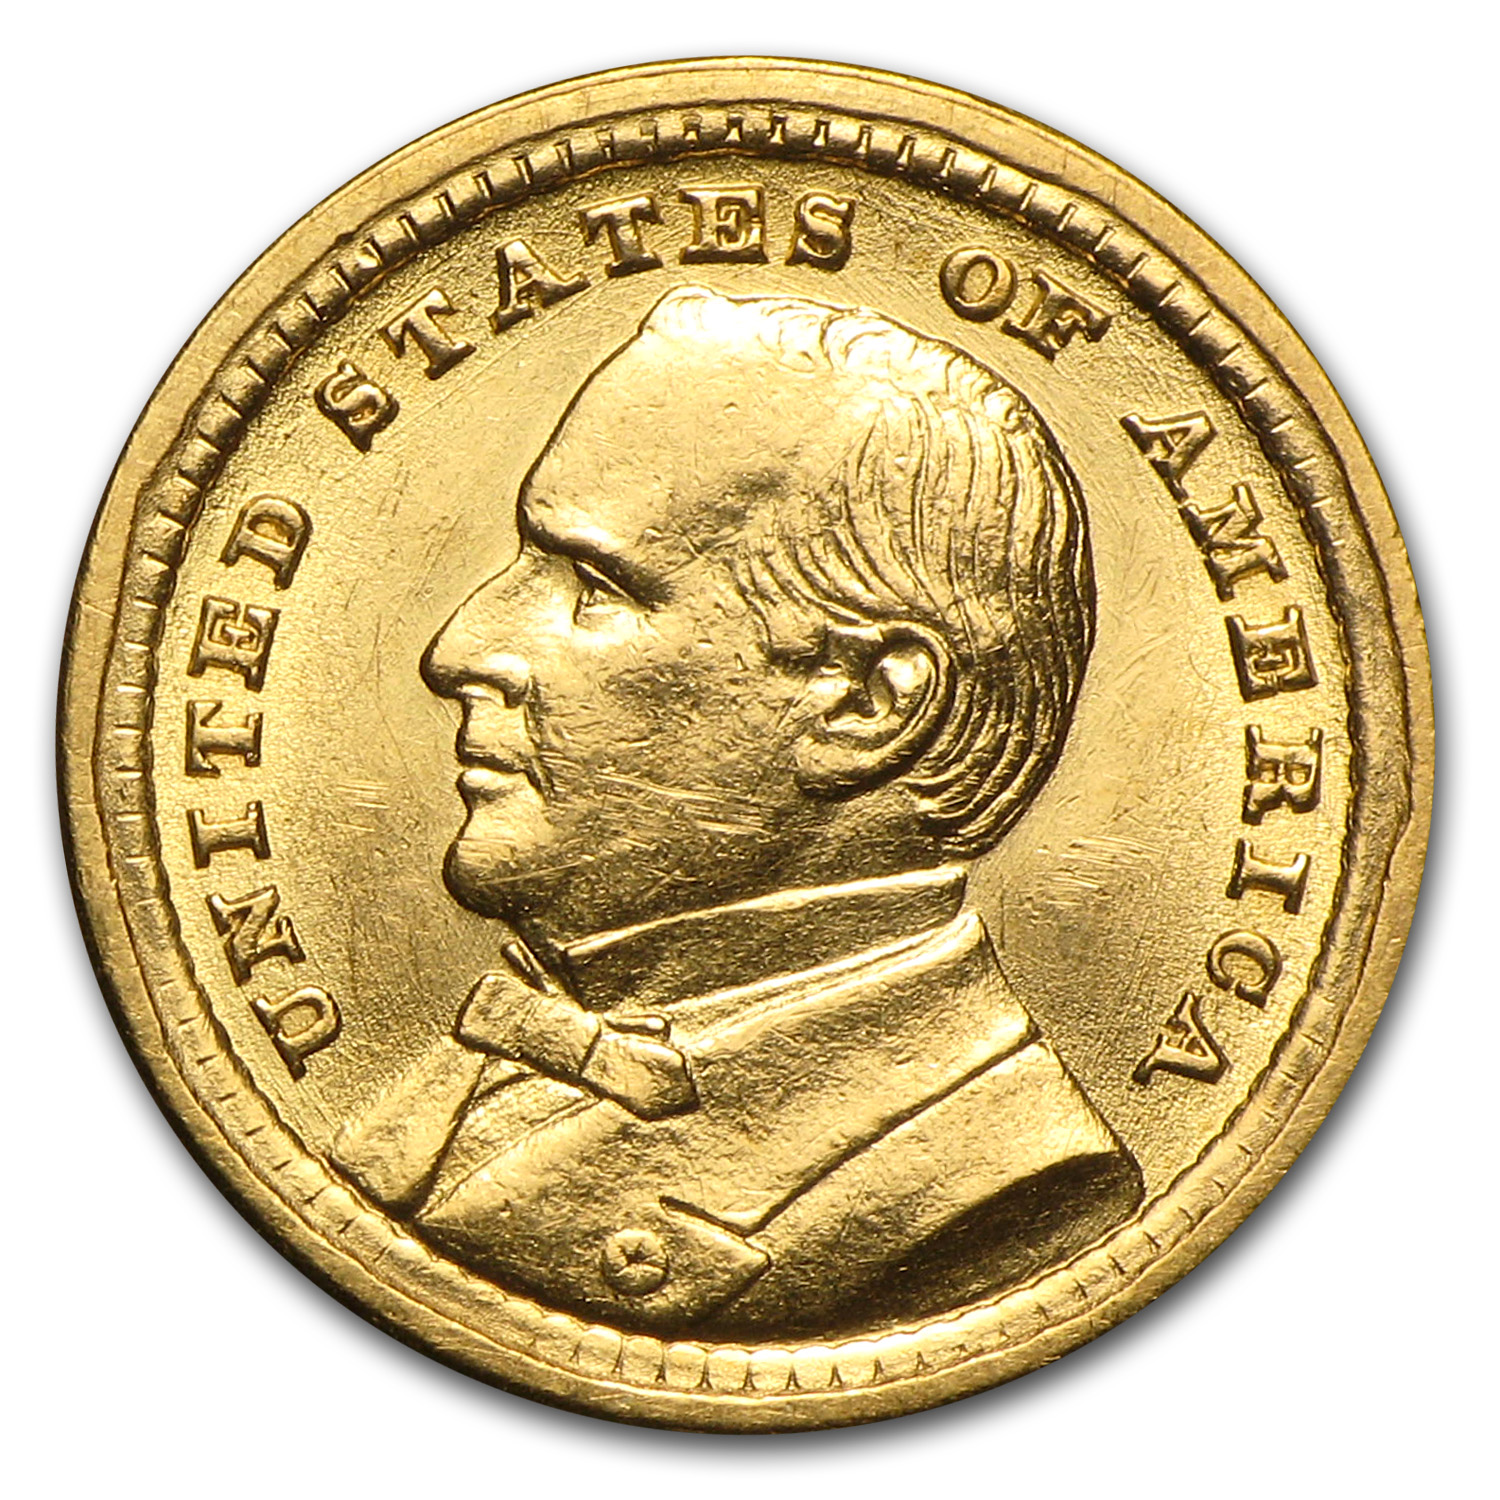 1903 $1.00 Gold Louisiana Purchase - McKinley - Uncirculated